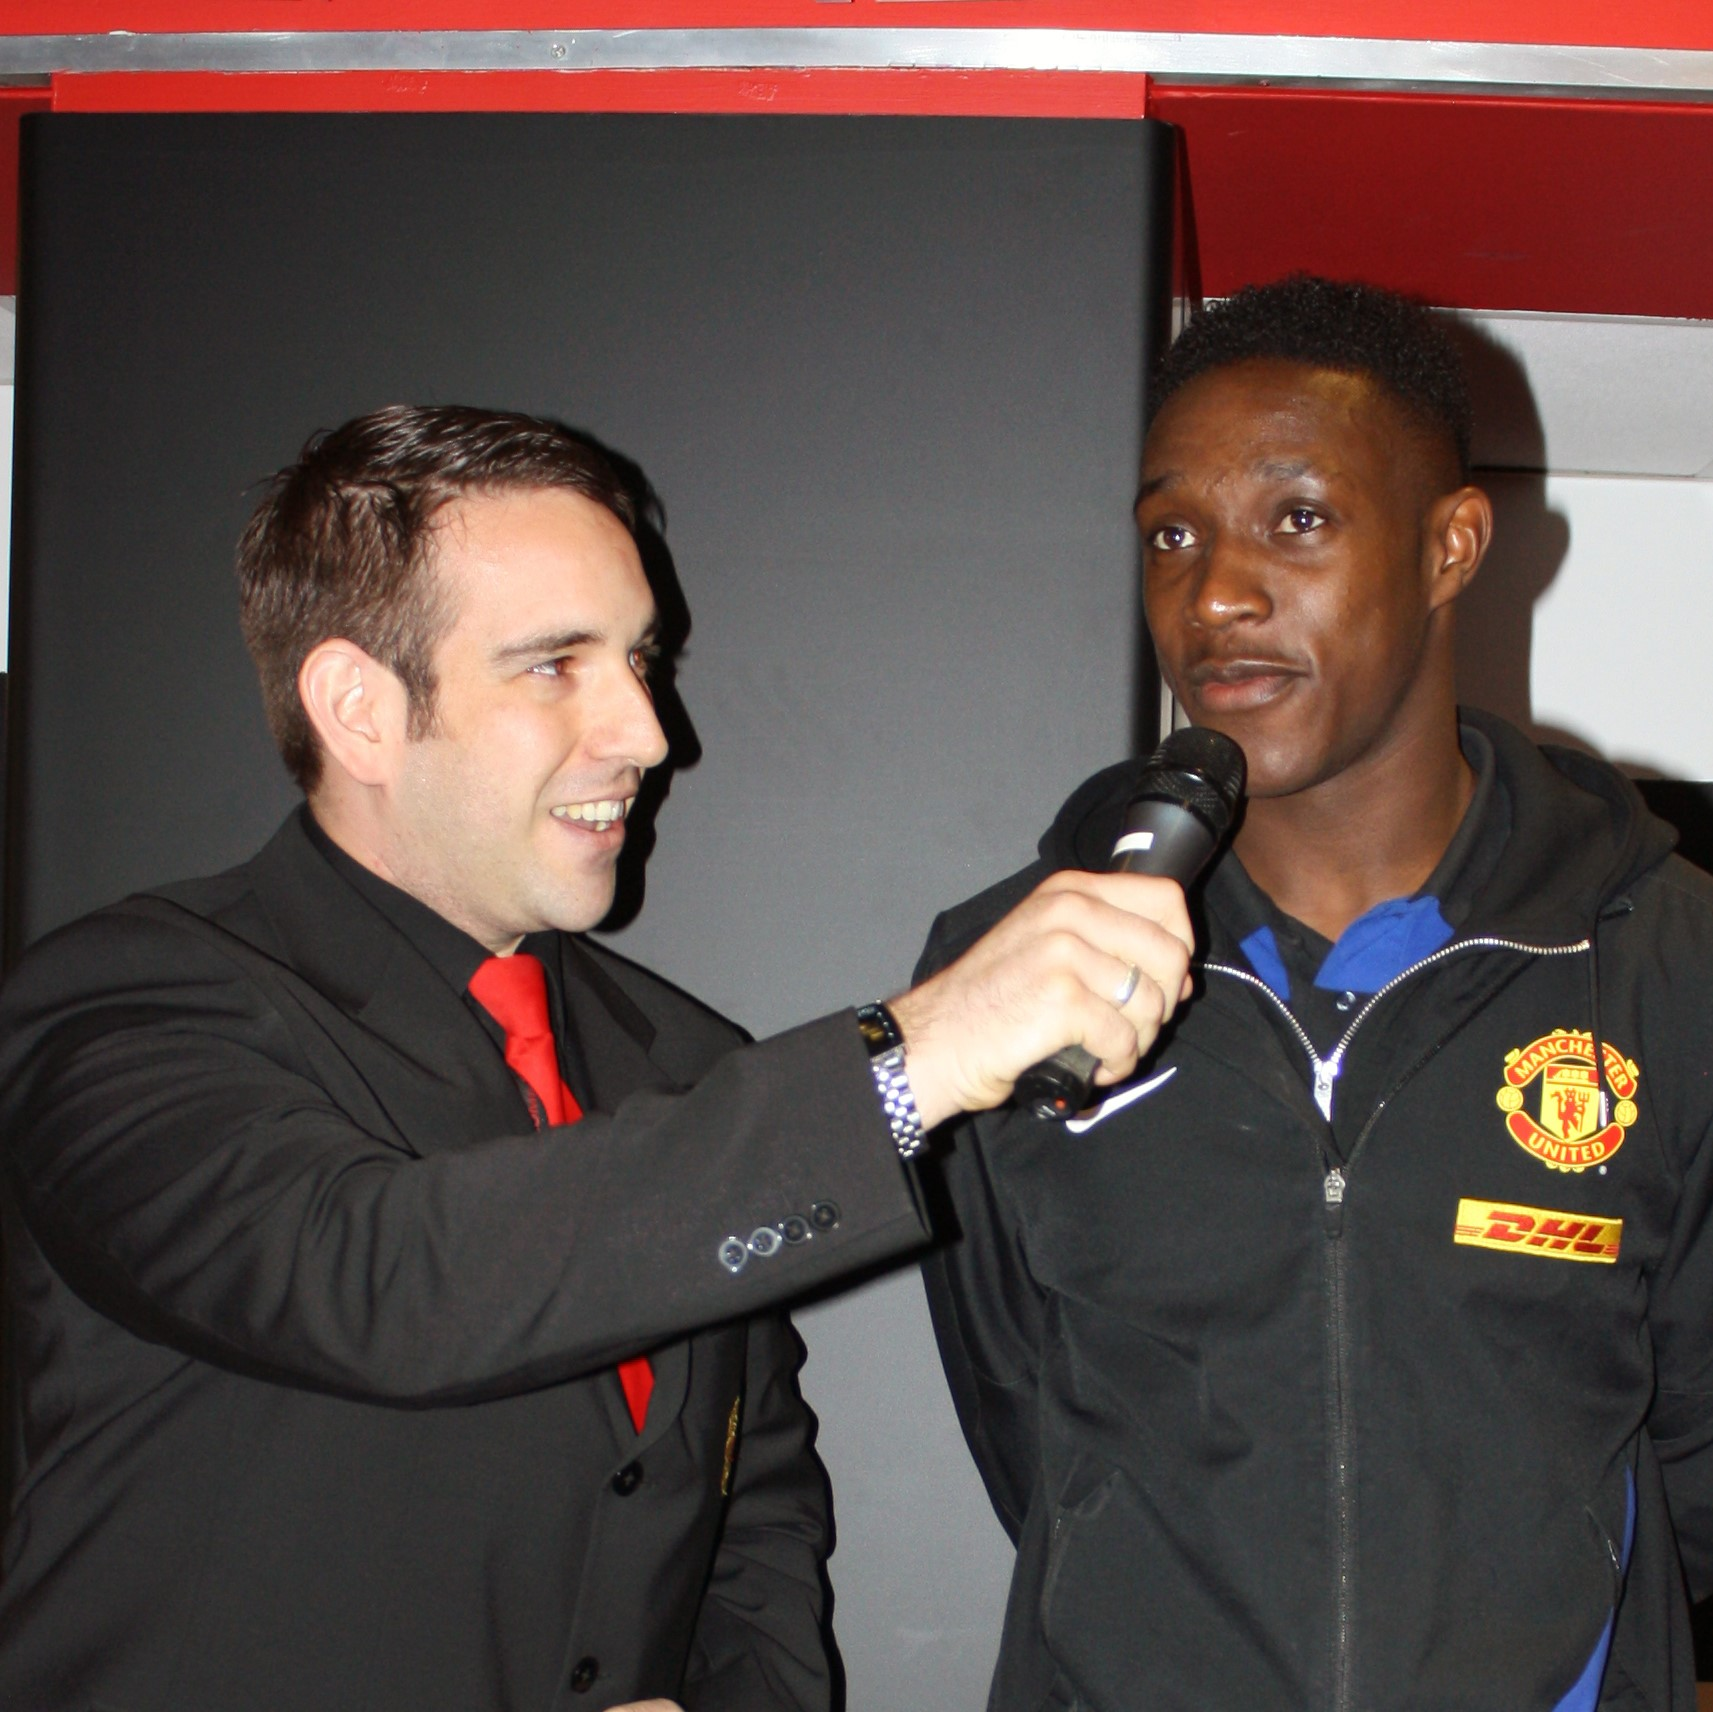 Compere John Norcott interviewing Danny Welbeck